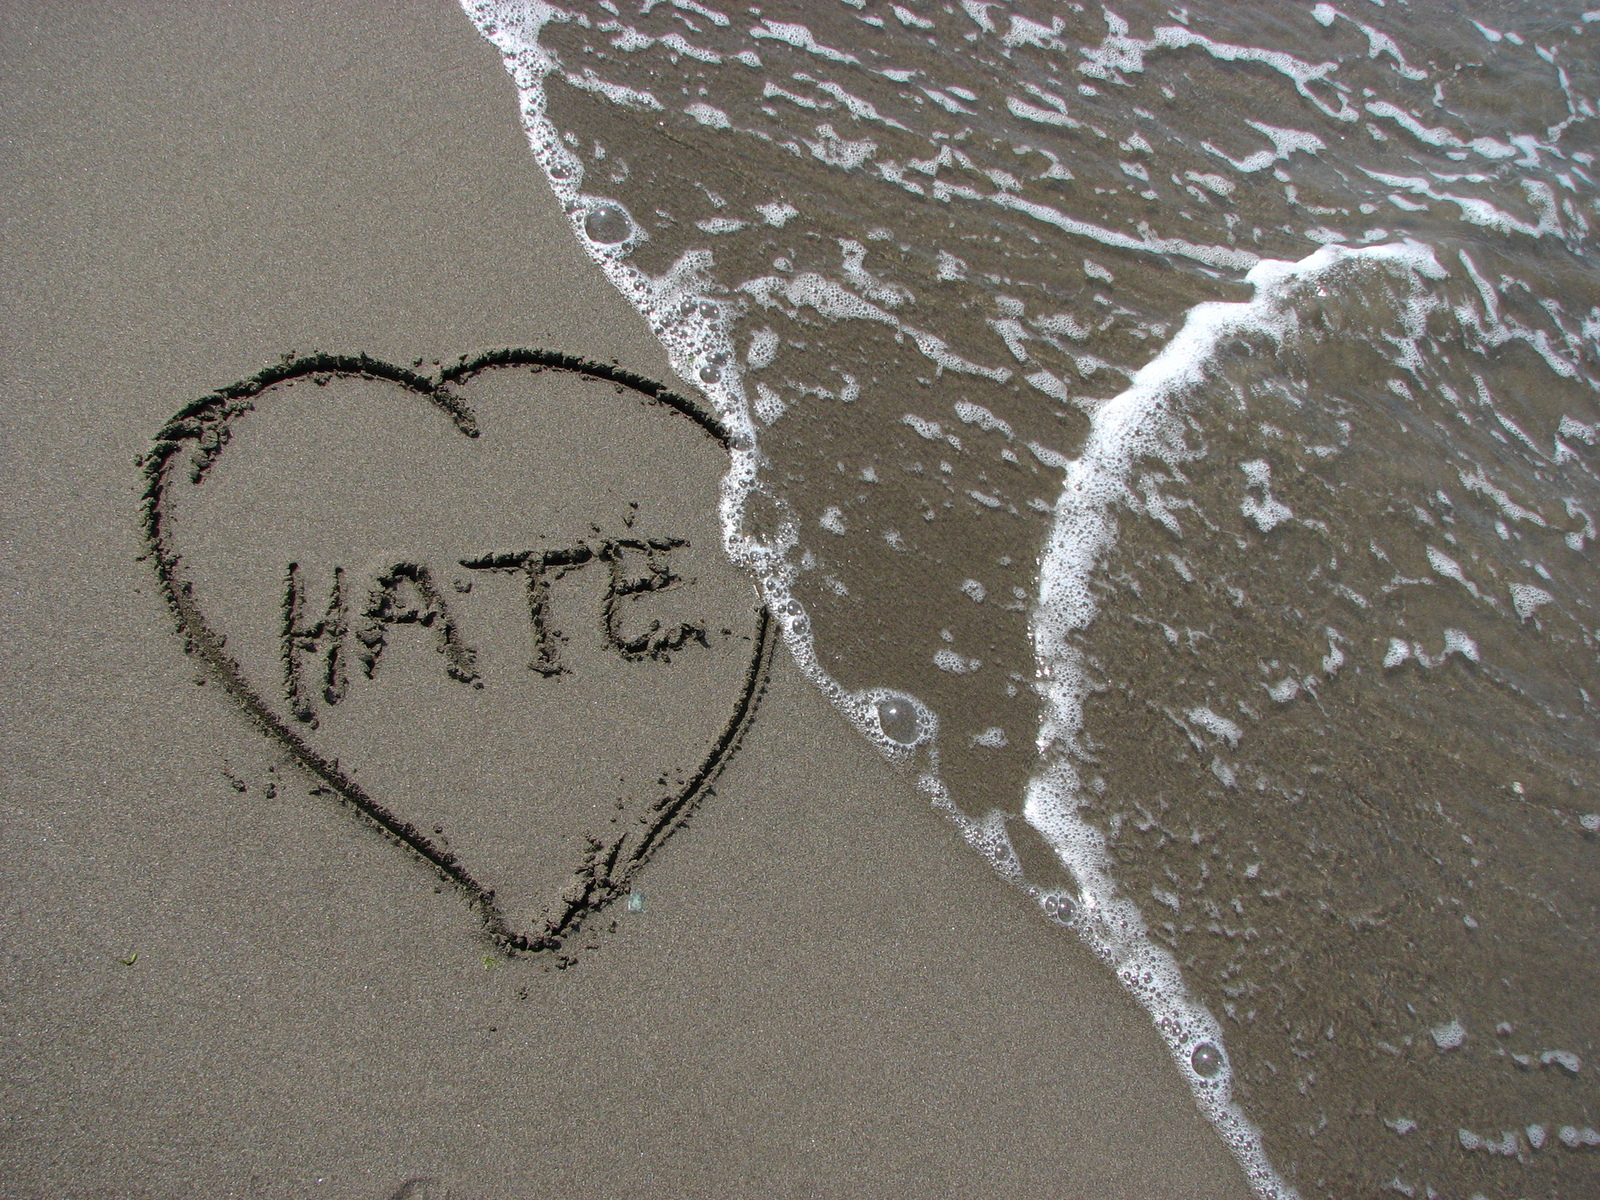 Results image of Hate in sand